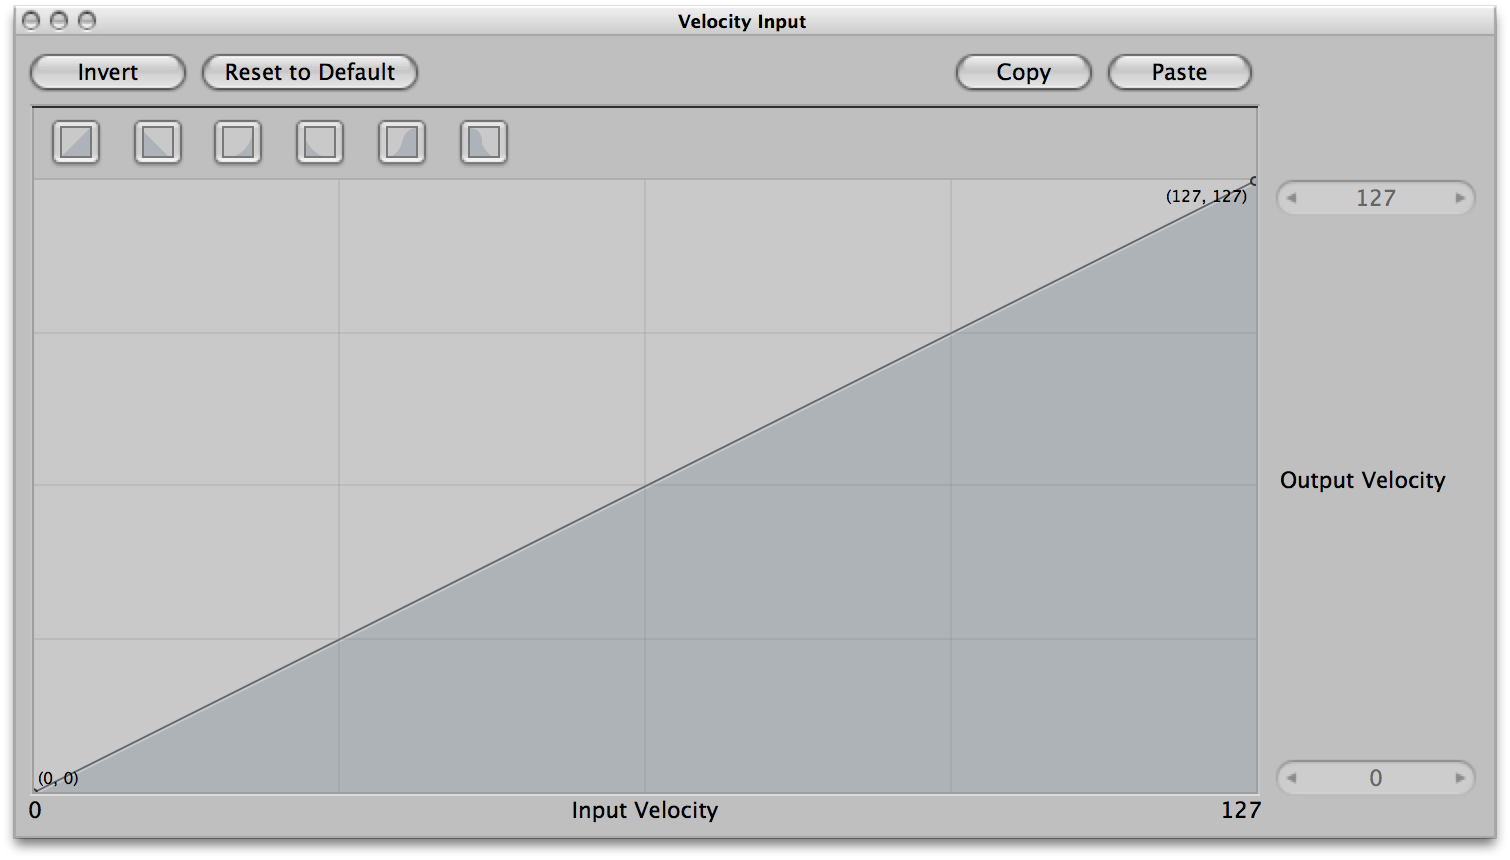 The MainStage velocity graph ranges from 0 to 127.